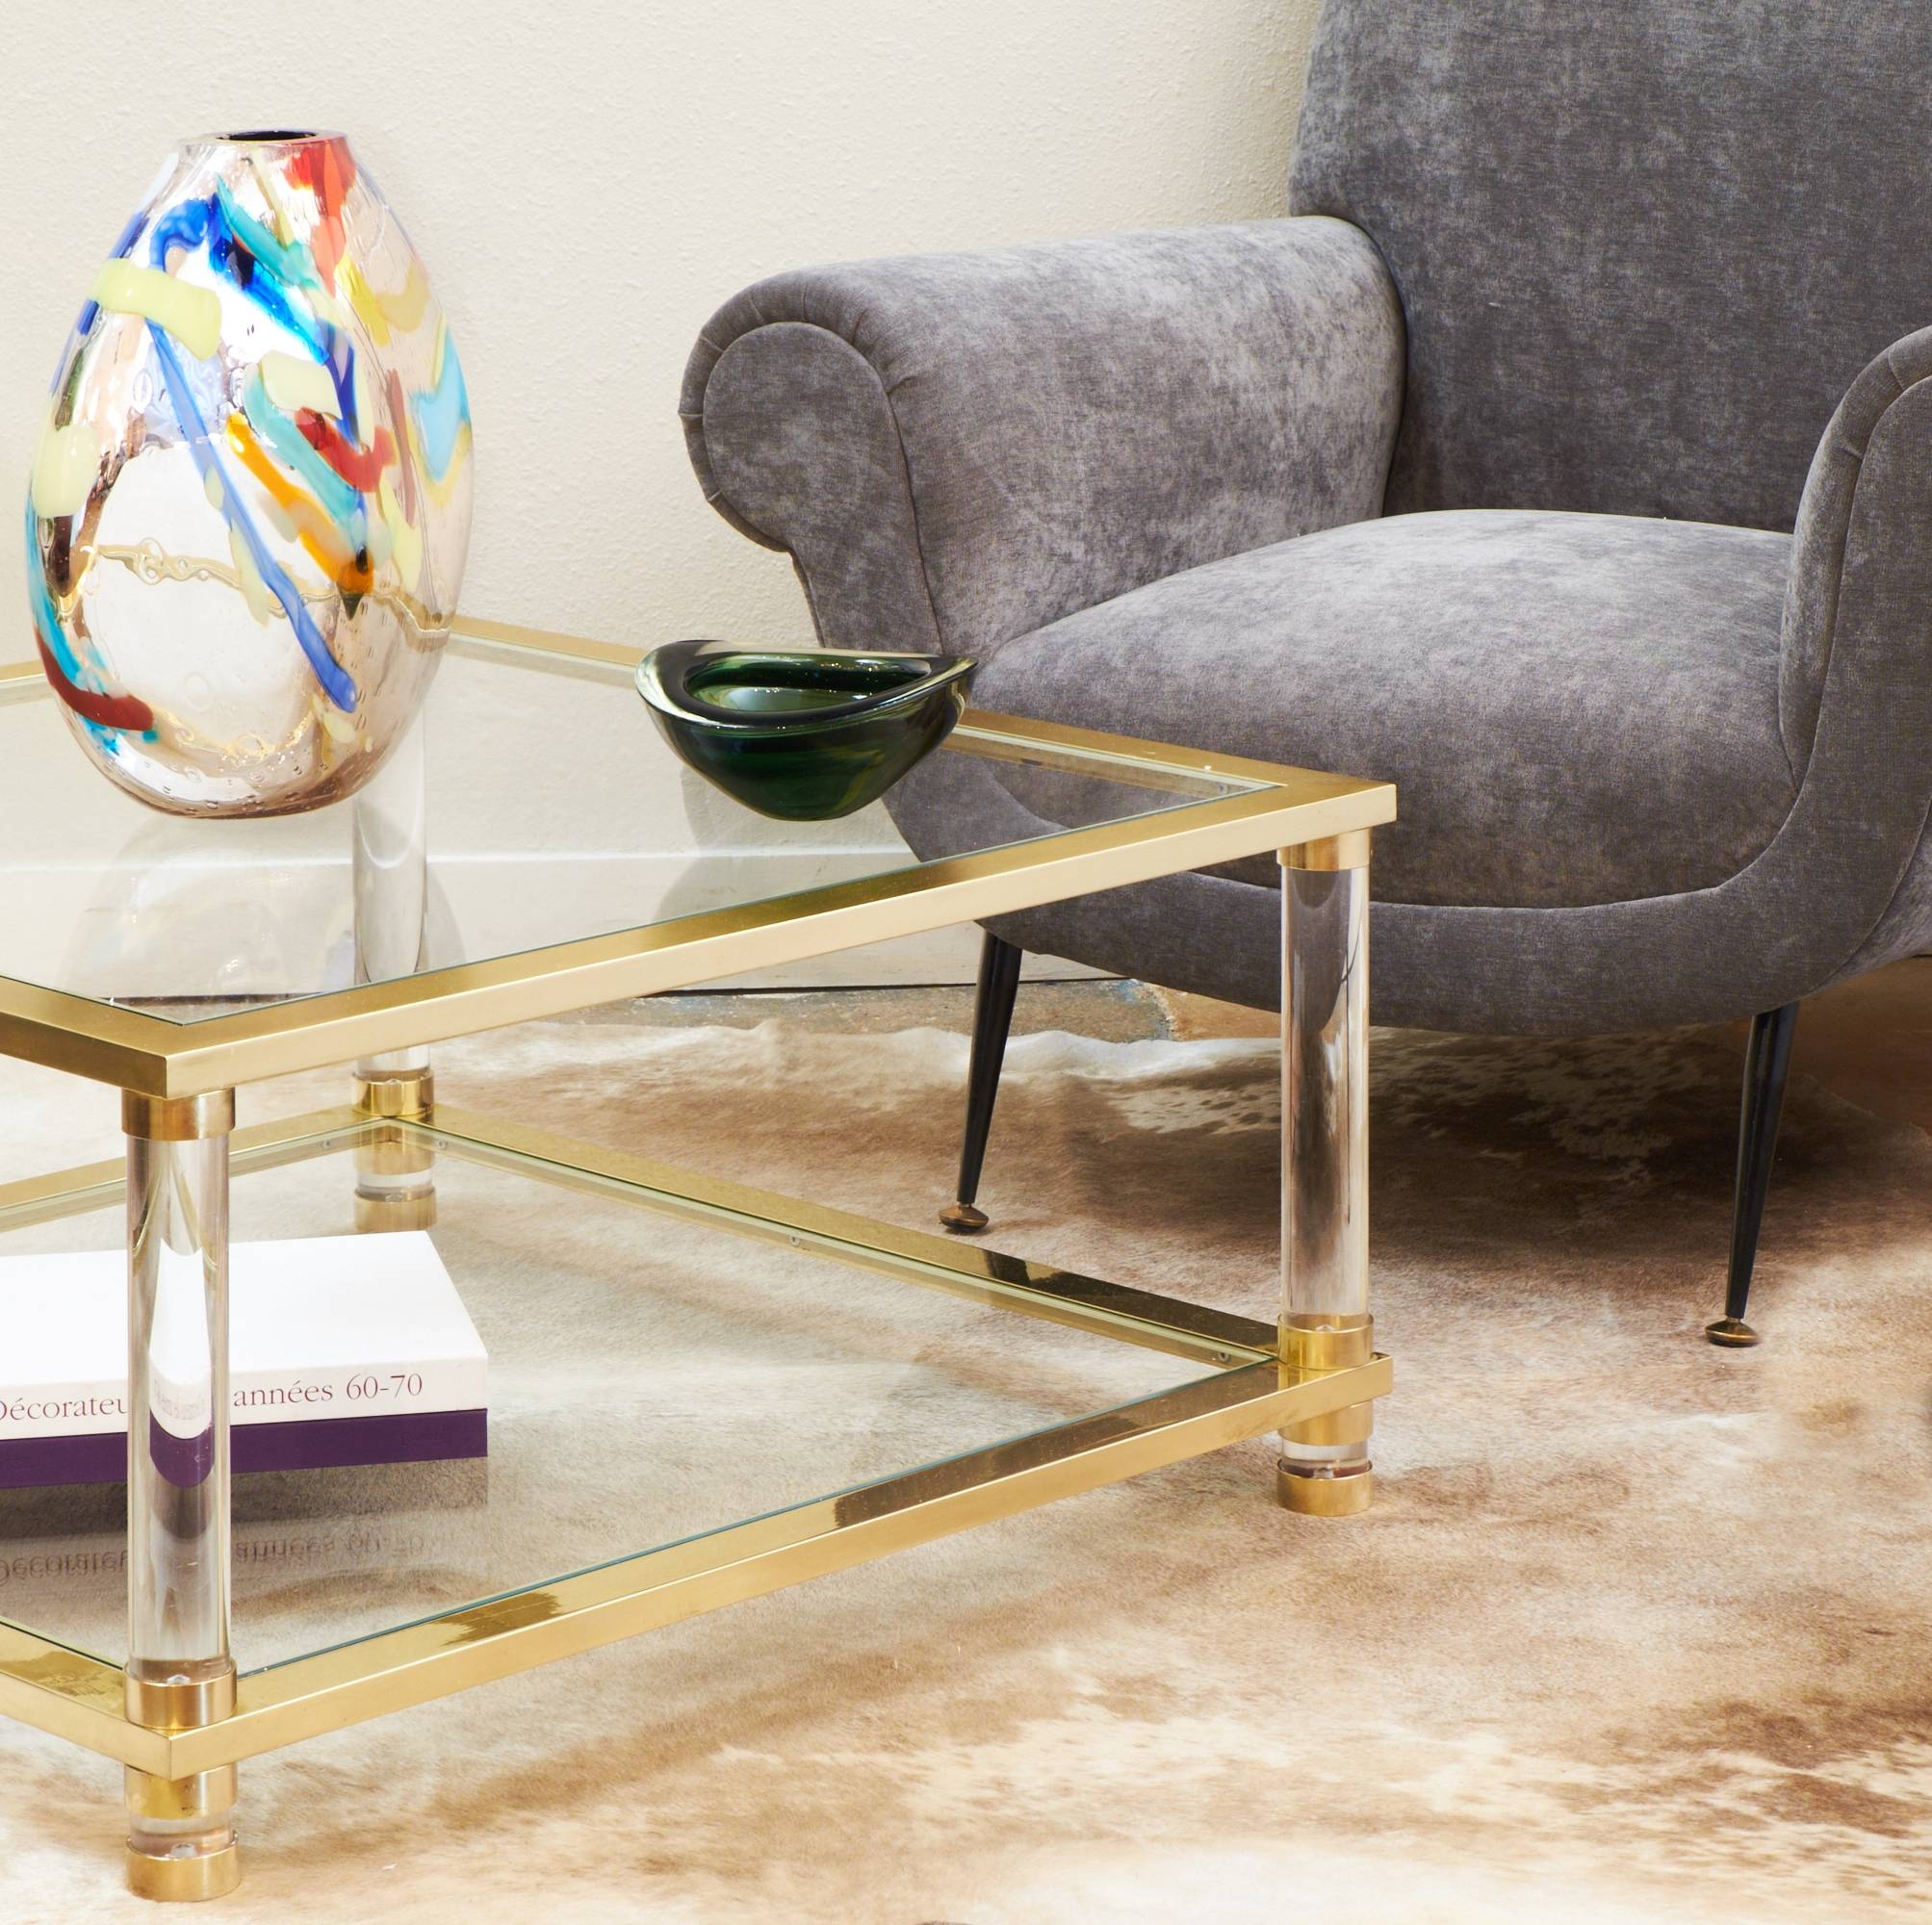 Mid-Century Lucite, Brass, Glass Coffee Table - Jean Marc Fray intended for Antique Brass Glass Coffee Tables (Image 30 of 37)